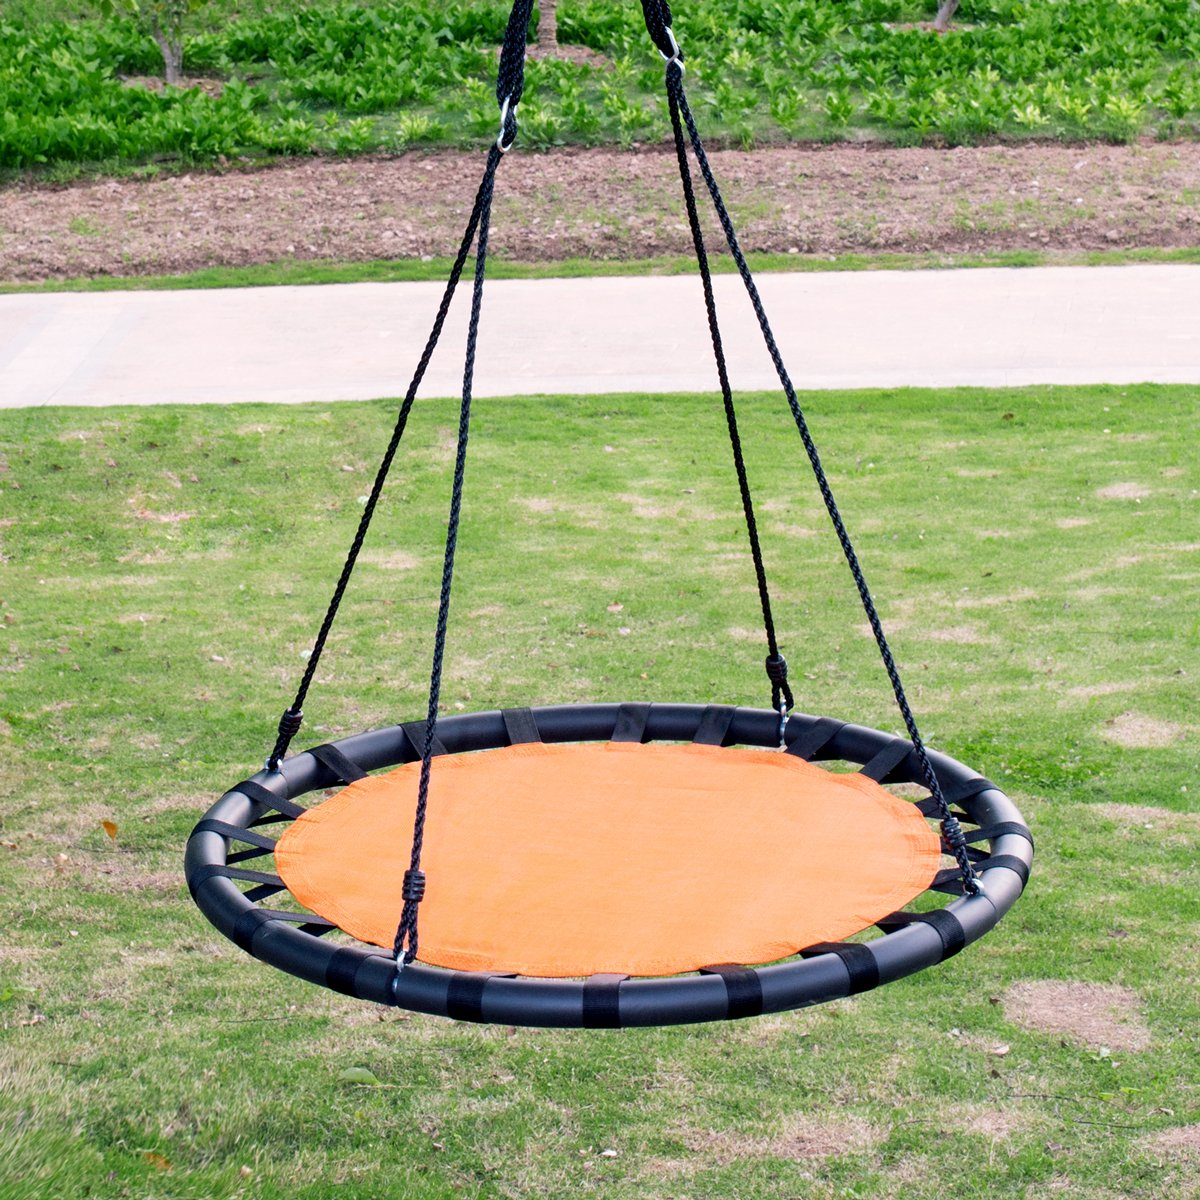 Clevr 40 Tree Net Teslin Web Saucer Round Swing, Detachable 360 Degree Spin Swivel Hanging Hardware Adjustable 71 Height Rope, 600 lbs Limit, Orange Black